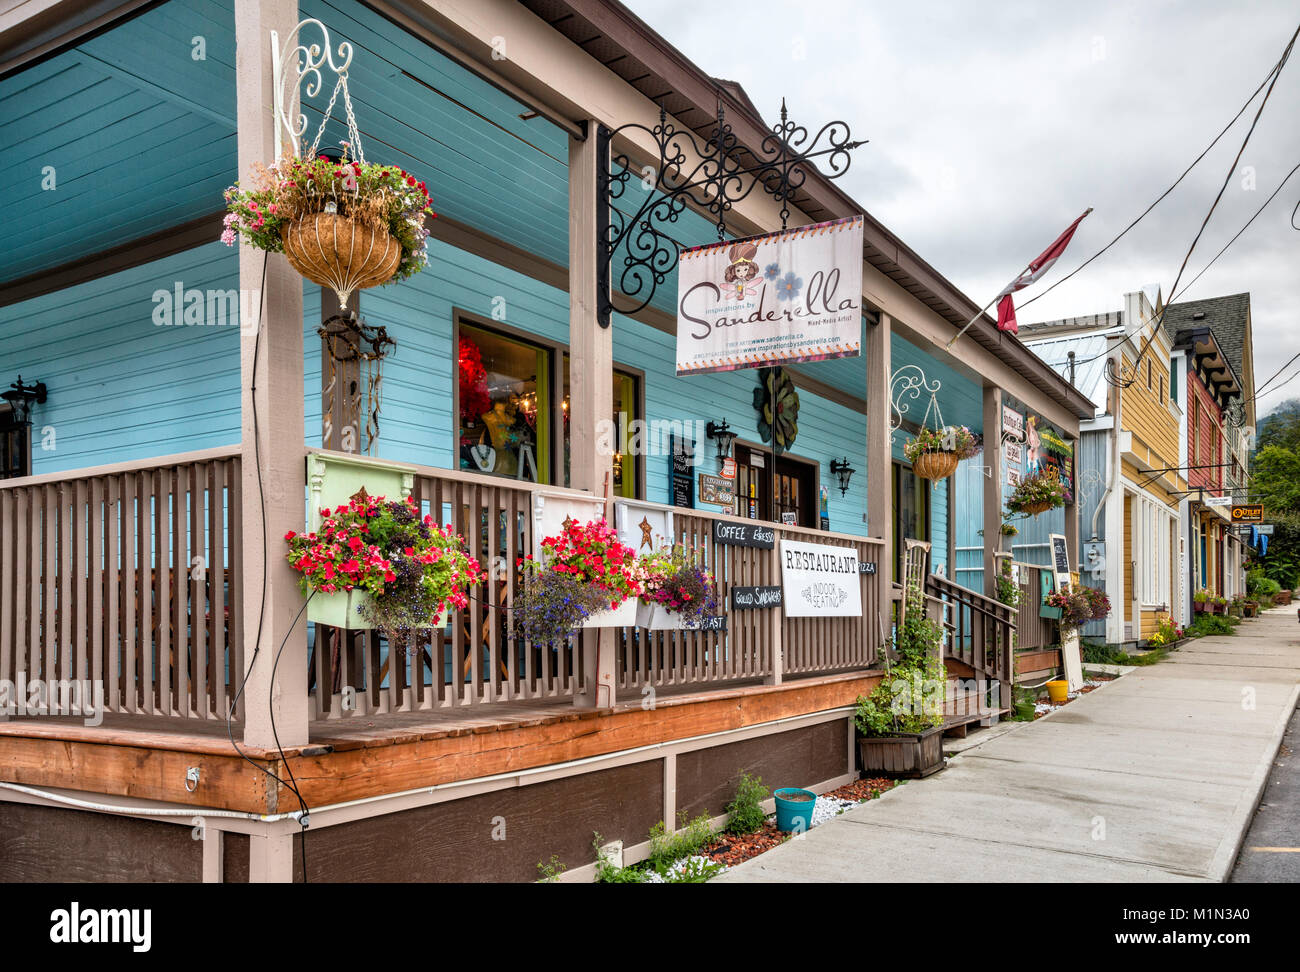 Buildings at Sixth Street in New Denver, Slocan Valley, West Kootenay Region, British Columbia, Canada - Stock Image